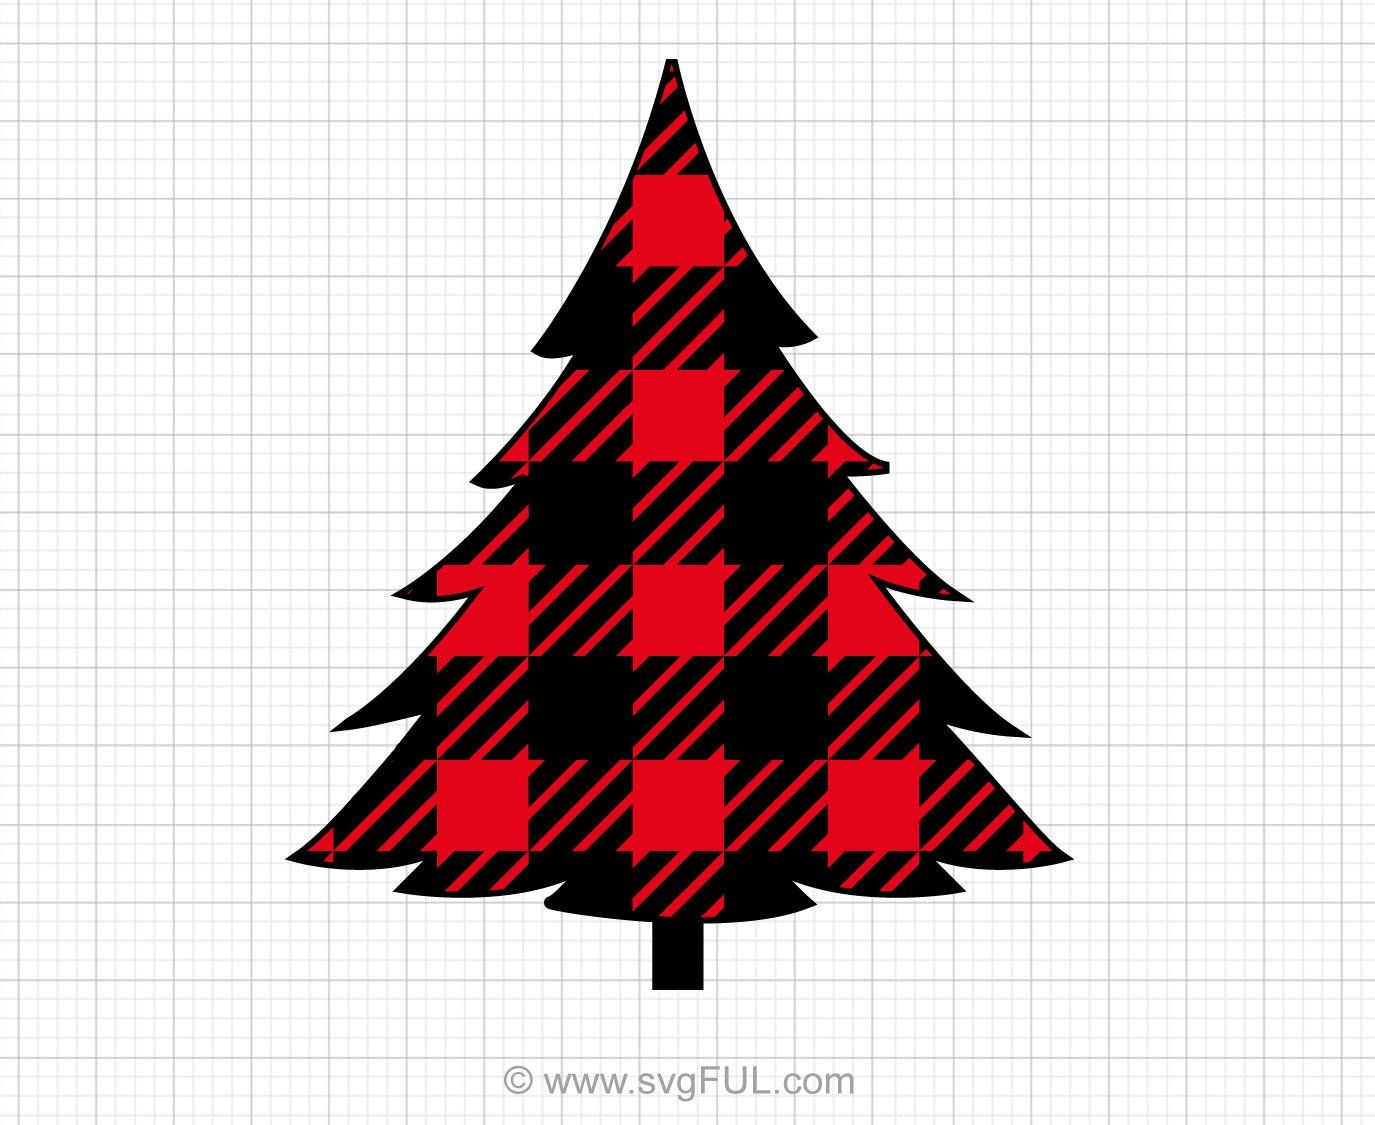 Red Plaid Tree Svg Clipart in 2020 Clip art, Christmas